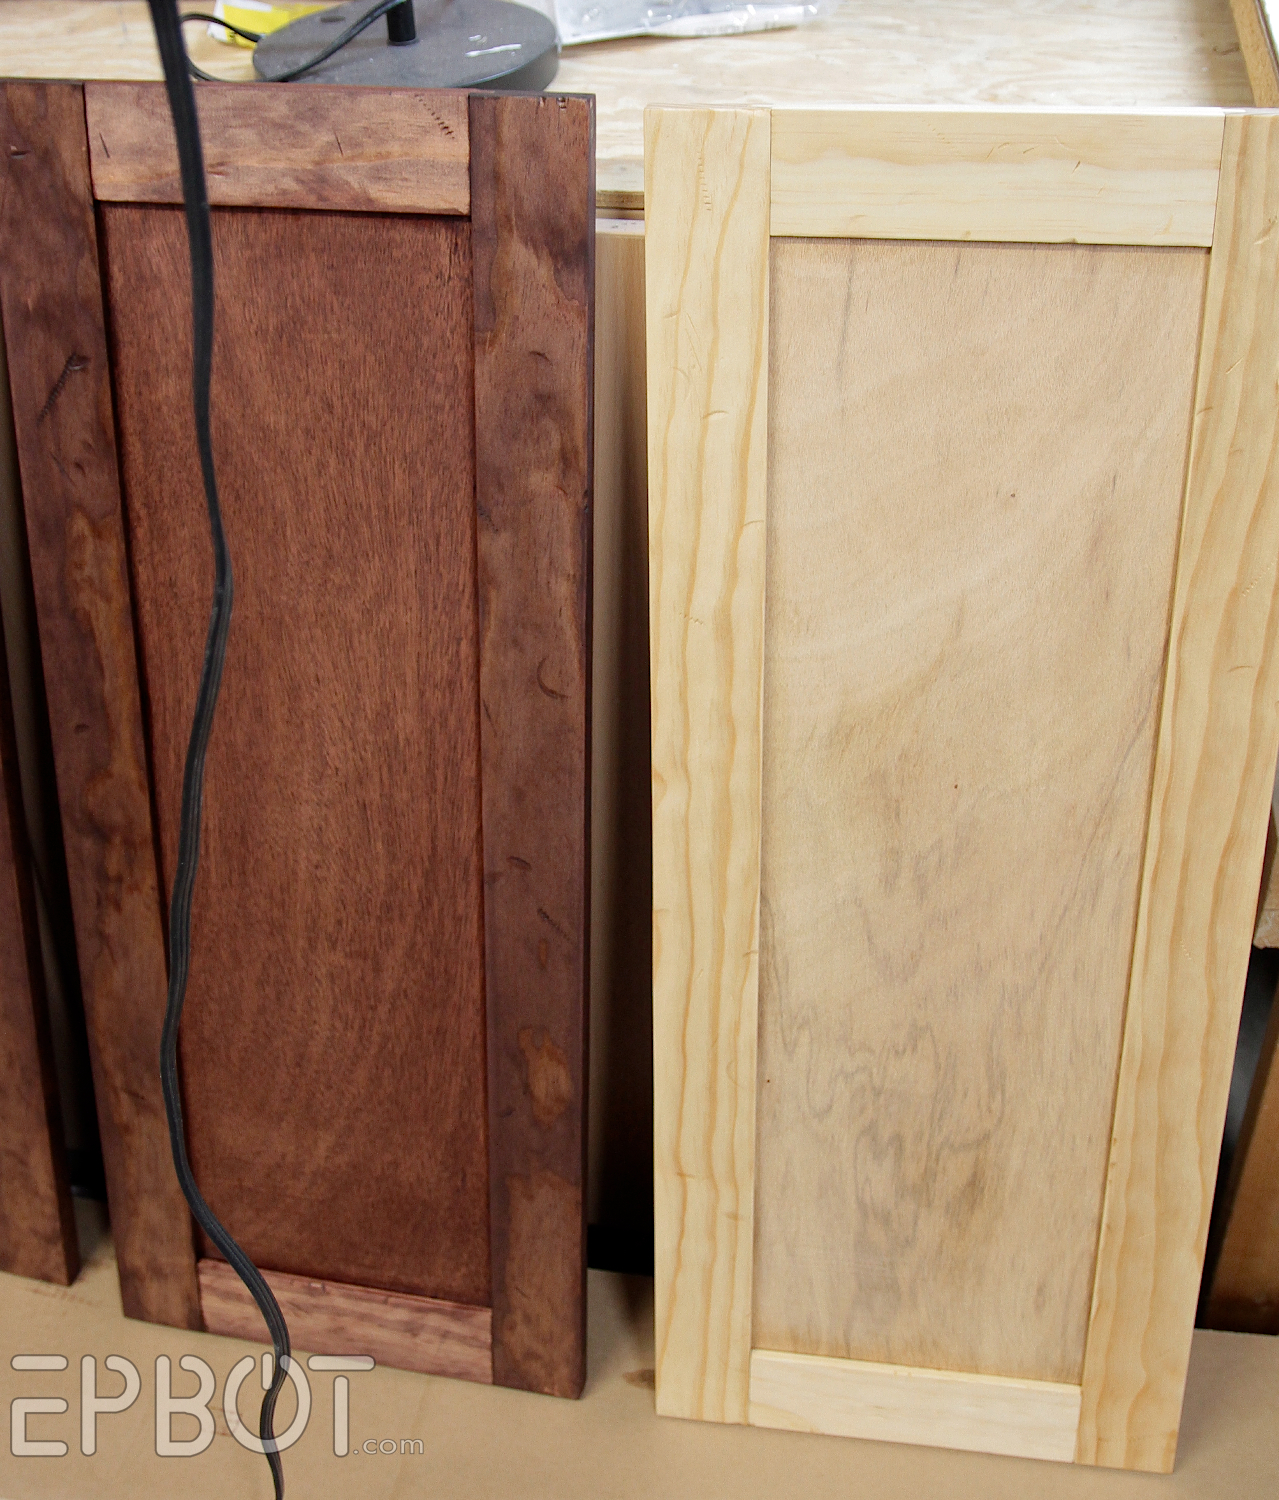 Epbot diy vintage rustic cabinet doors for Diy glass cabinet doors